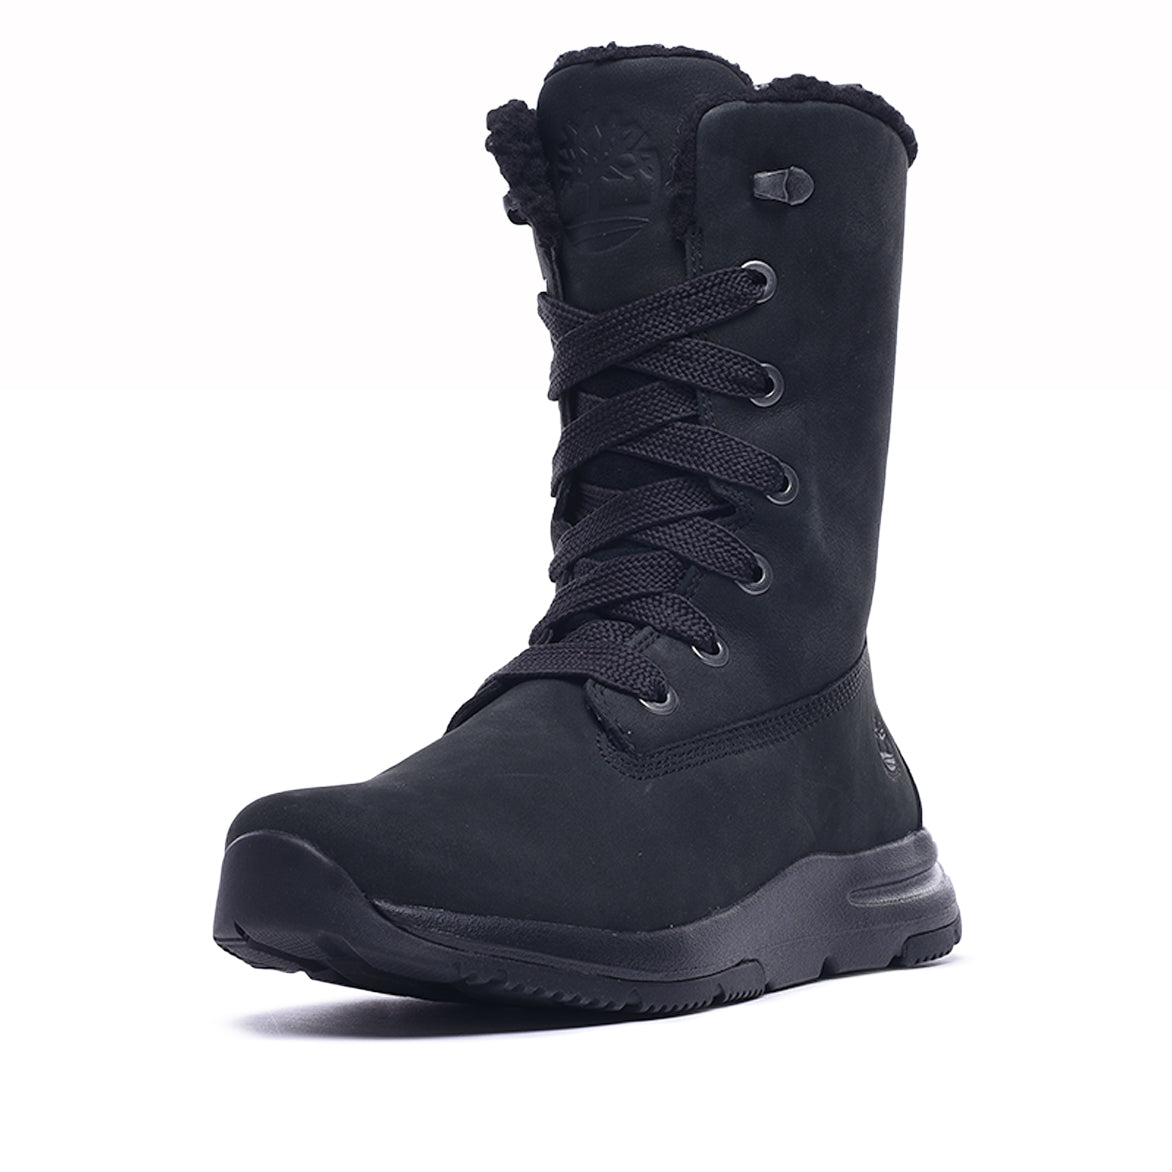 WMNS MABEL TOWN MID WATERPROOF BOOT - BLACK